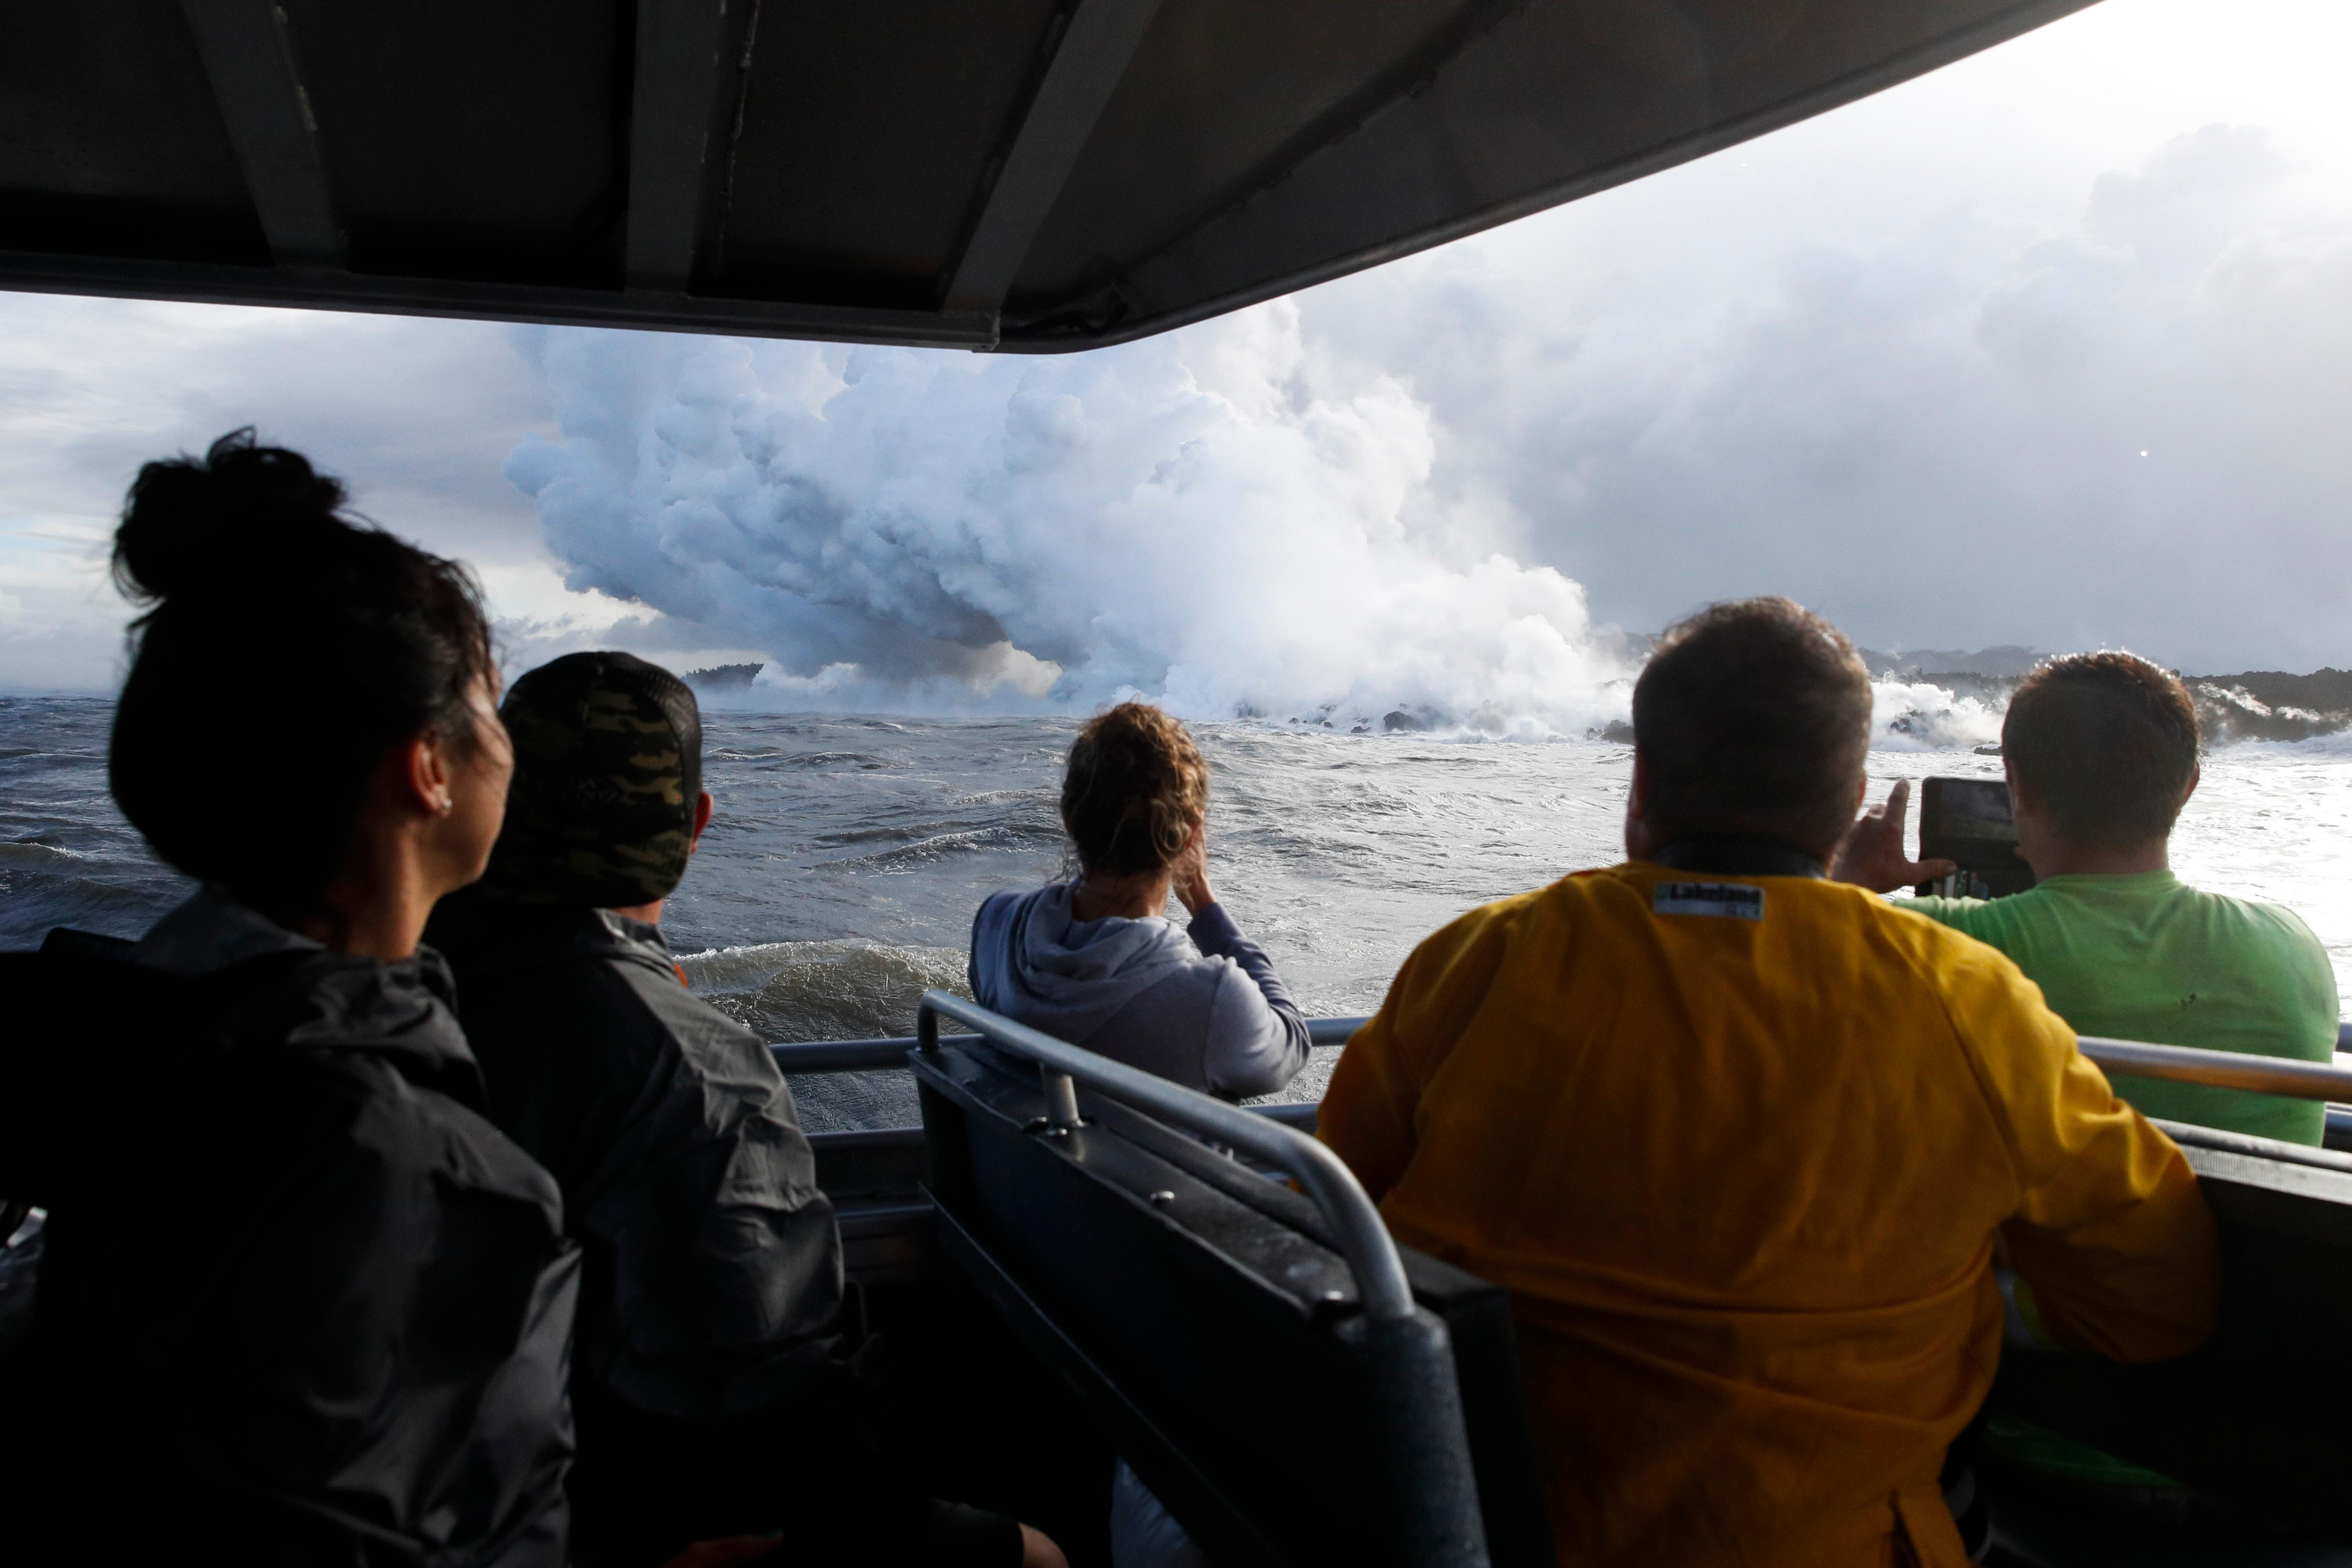 People watch a plume of steam as lava enters the ocean near Pahoa, Hawaii, Sunday, May 20, 2018. Kilauea volcano that is oozing, spewing and exploding on Hawaii's Big Island has gotten more hazardous in recent days, with rivers of molten rock pouring into the ocean Sunday and flying lava causing the first major injury. (AP Photo/Jae C. Hong)